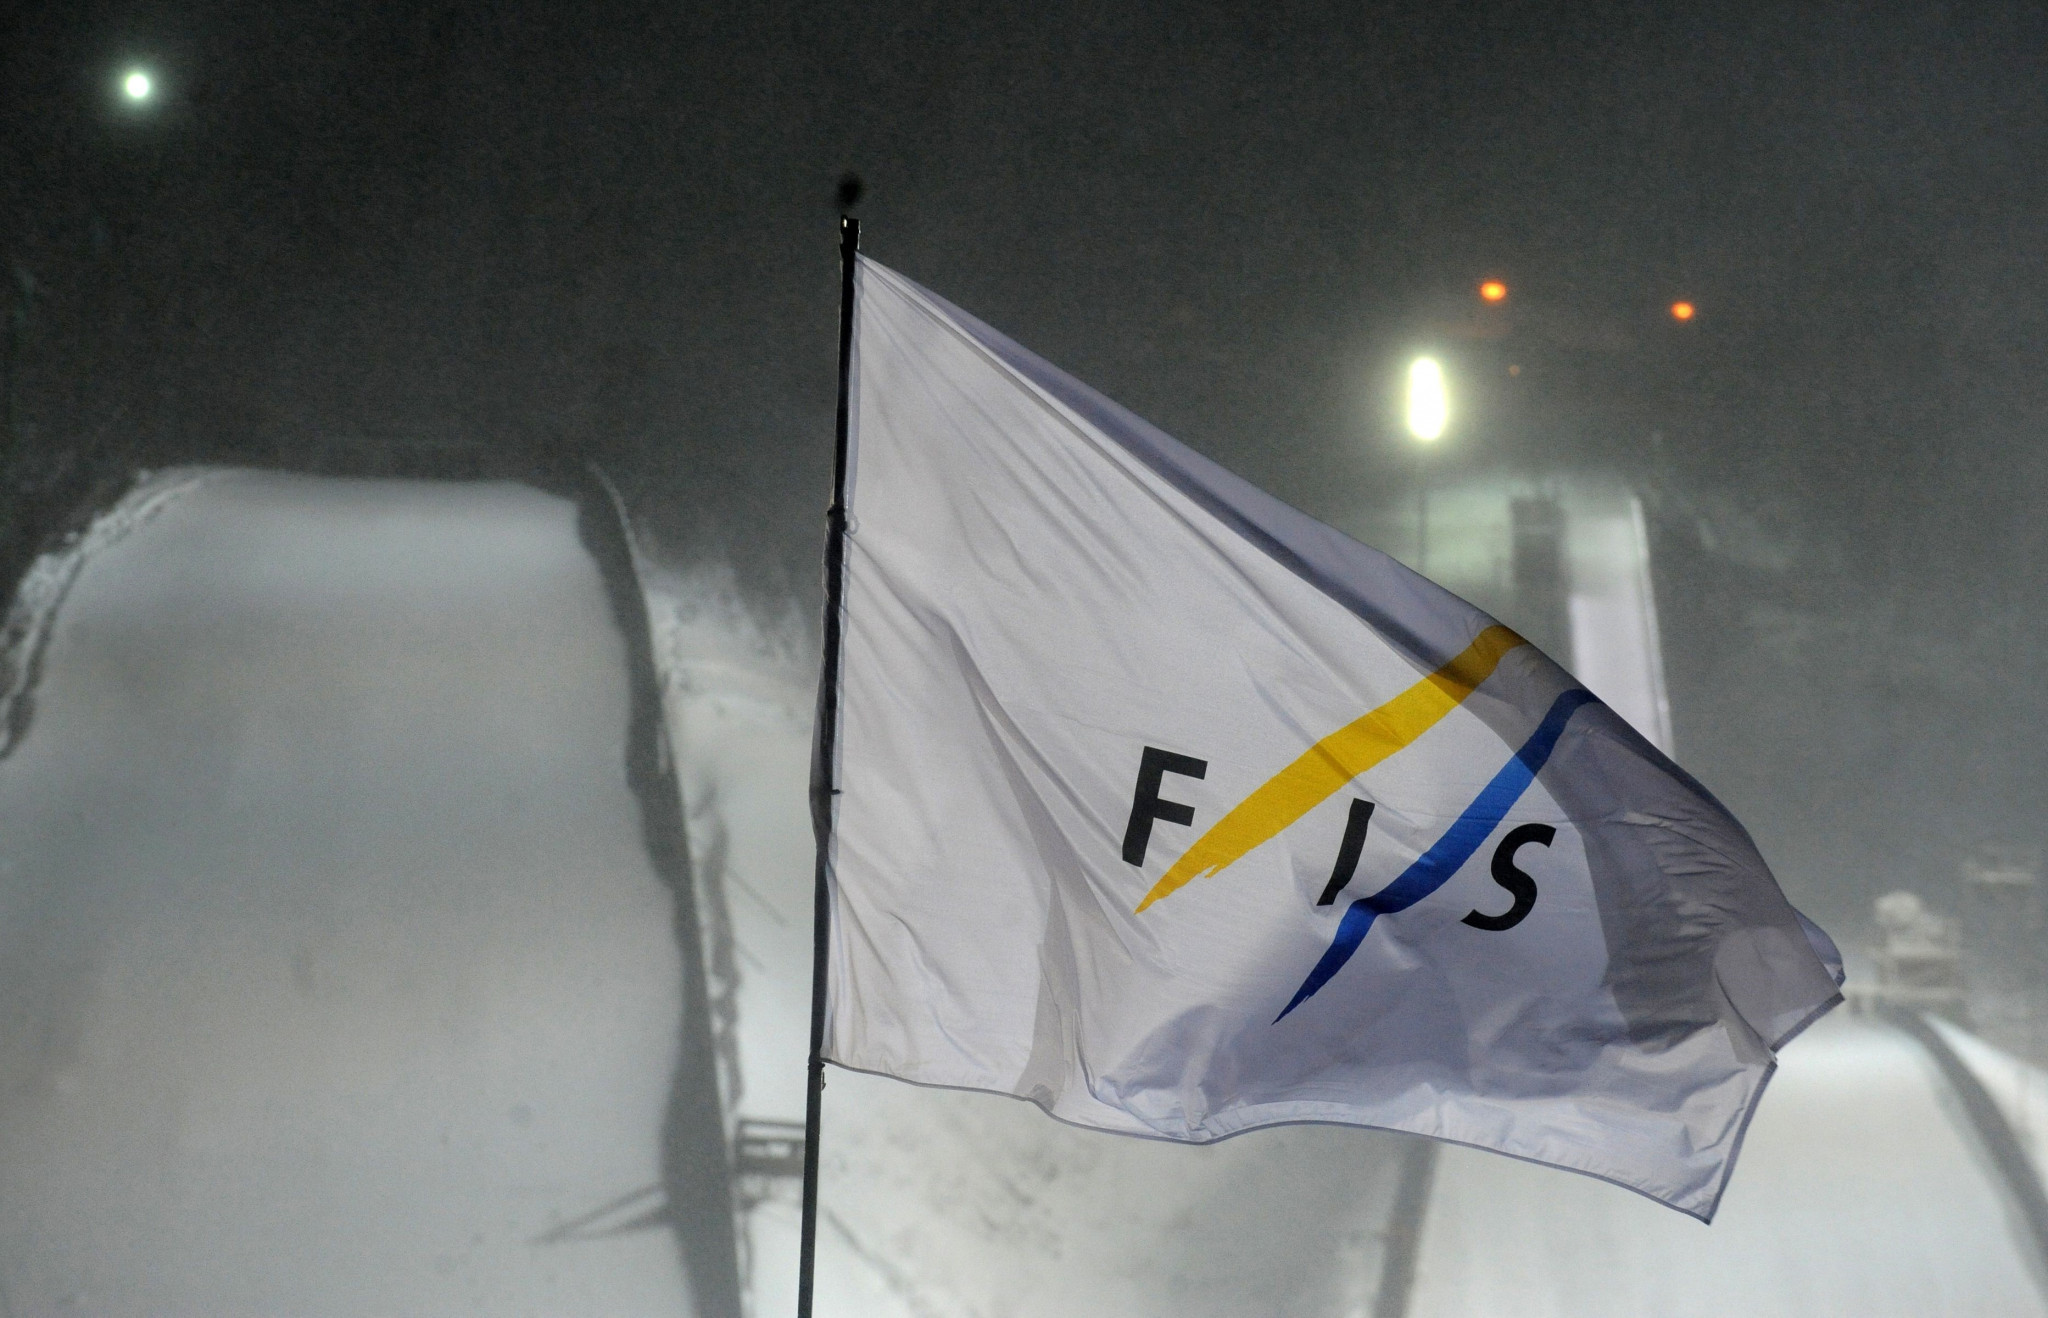 FIS members reject name change, approve statute updates at Extraordinary Congress